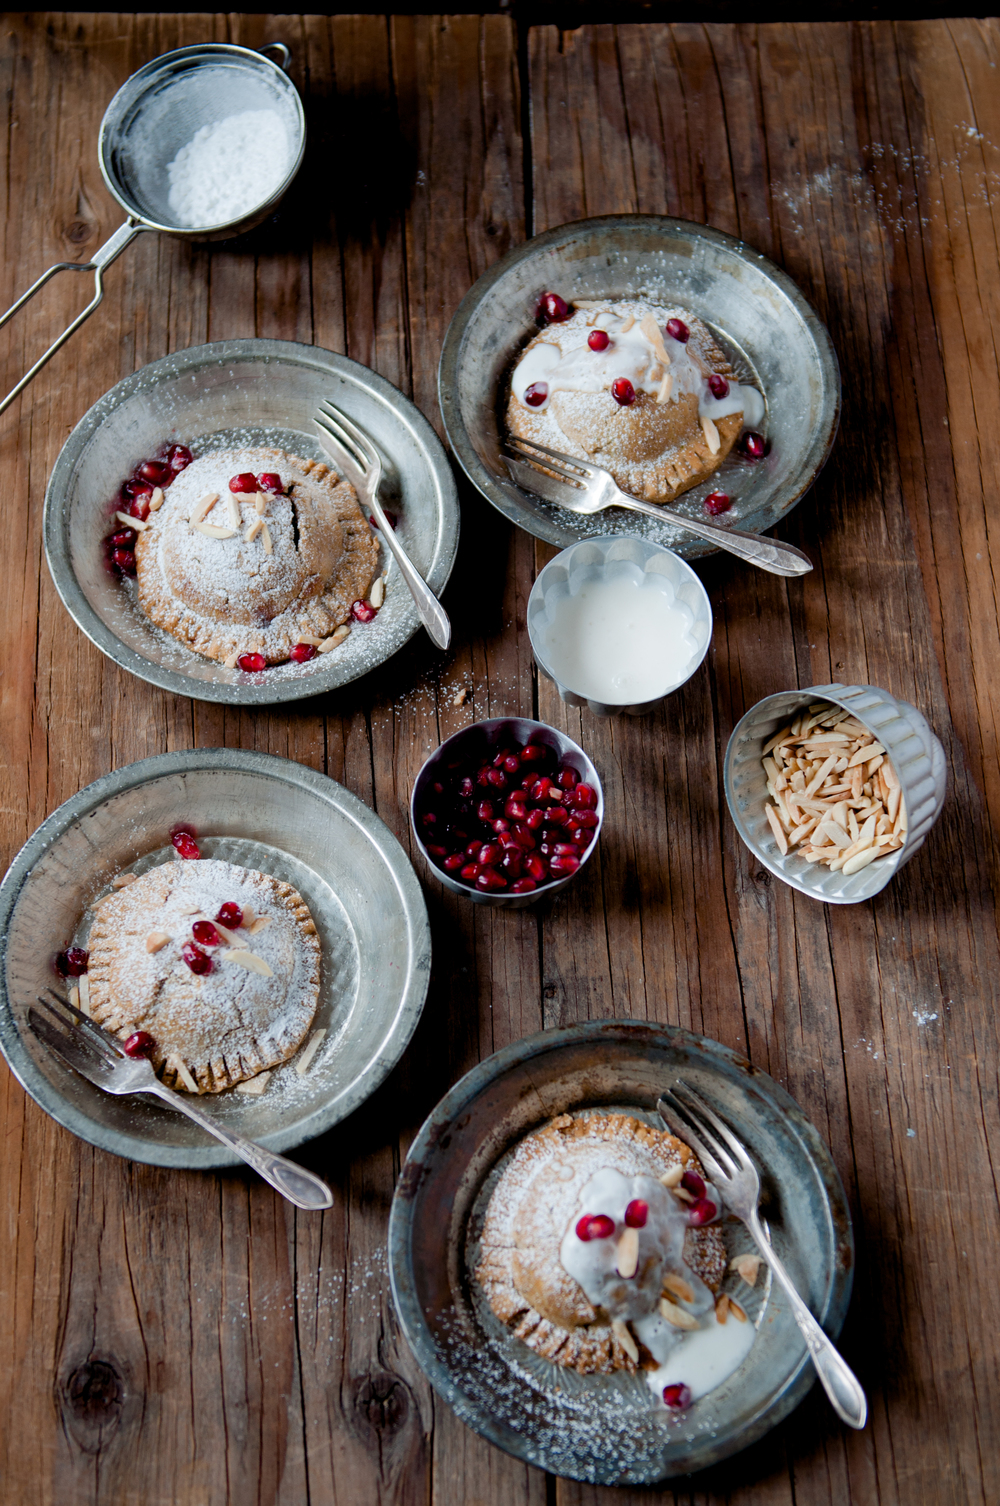 Gluten Free pockets with raw sugar and cardamom roasted Asian pears finished with sweetened yogurt and pomegranate.